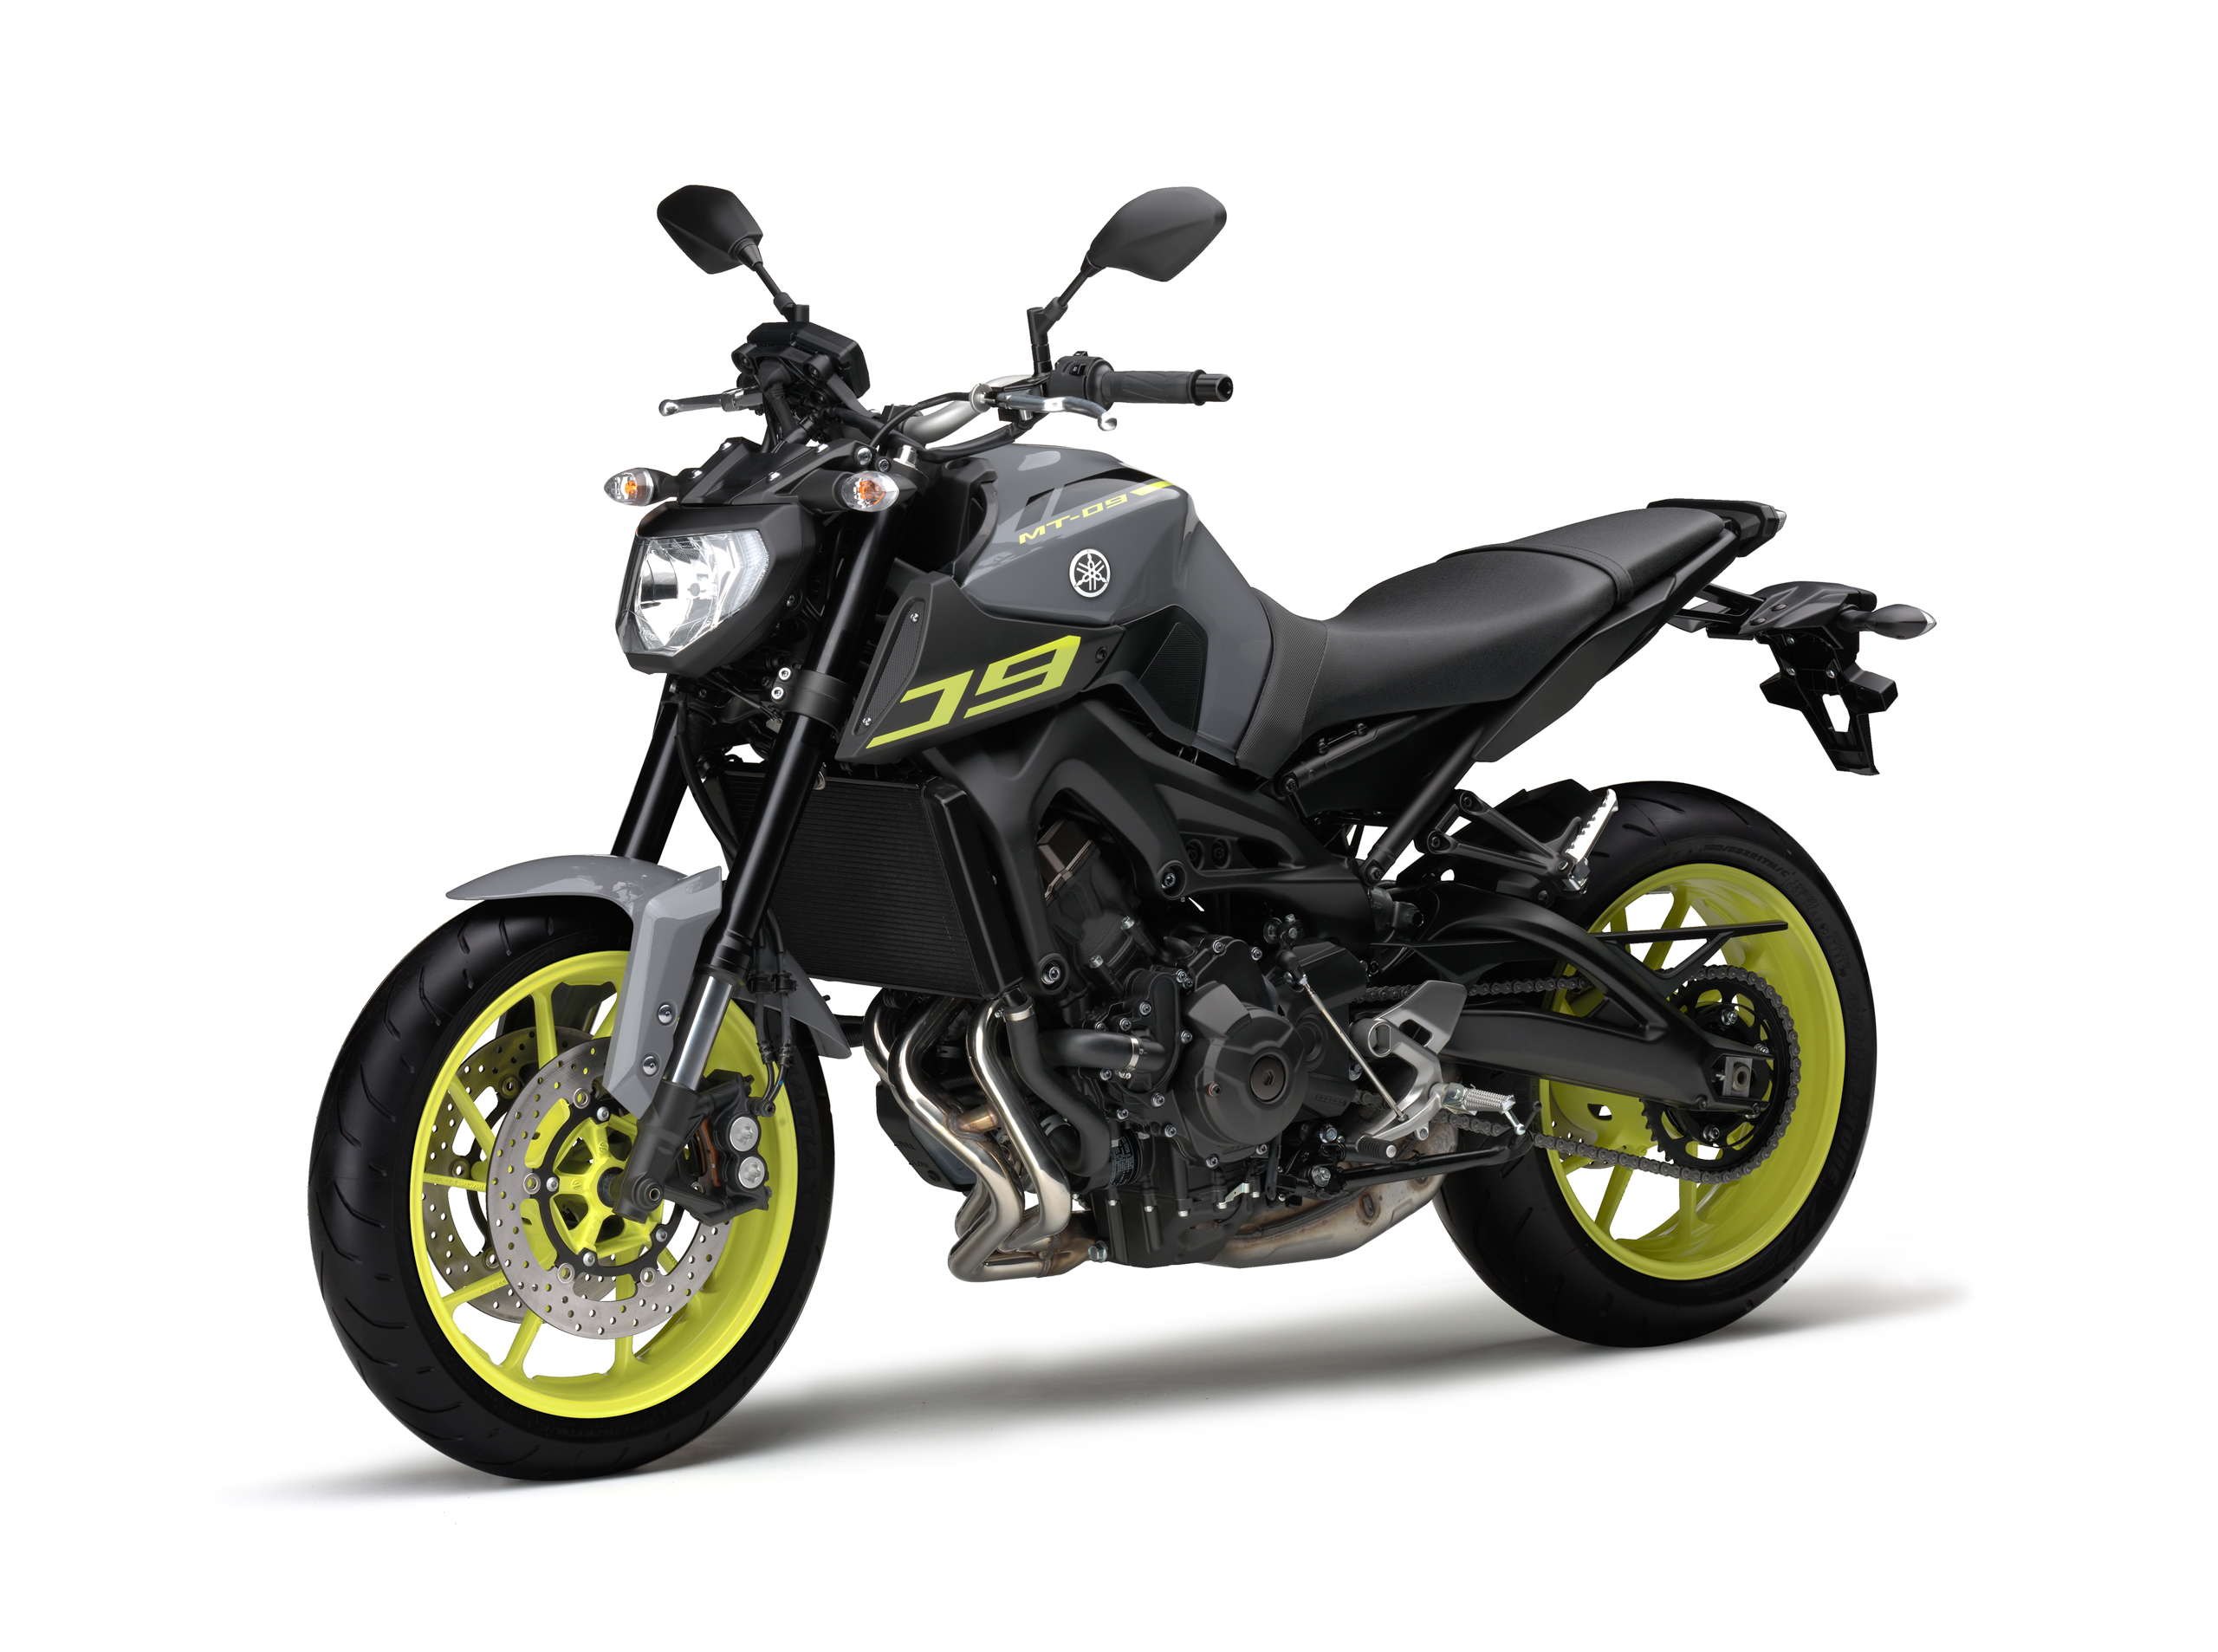 2016 yamaha mt 09 in malaysia new colours rm45k image 448733. Black Bedroom Furniture Sets. Home Design Ideas